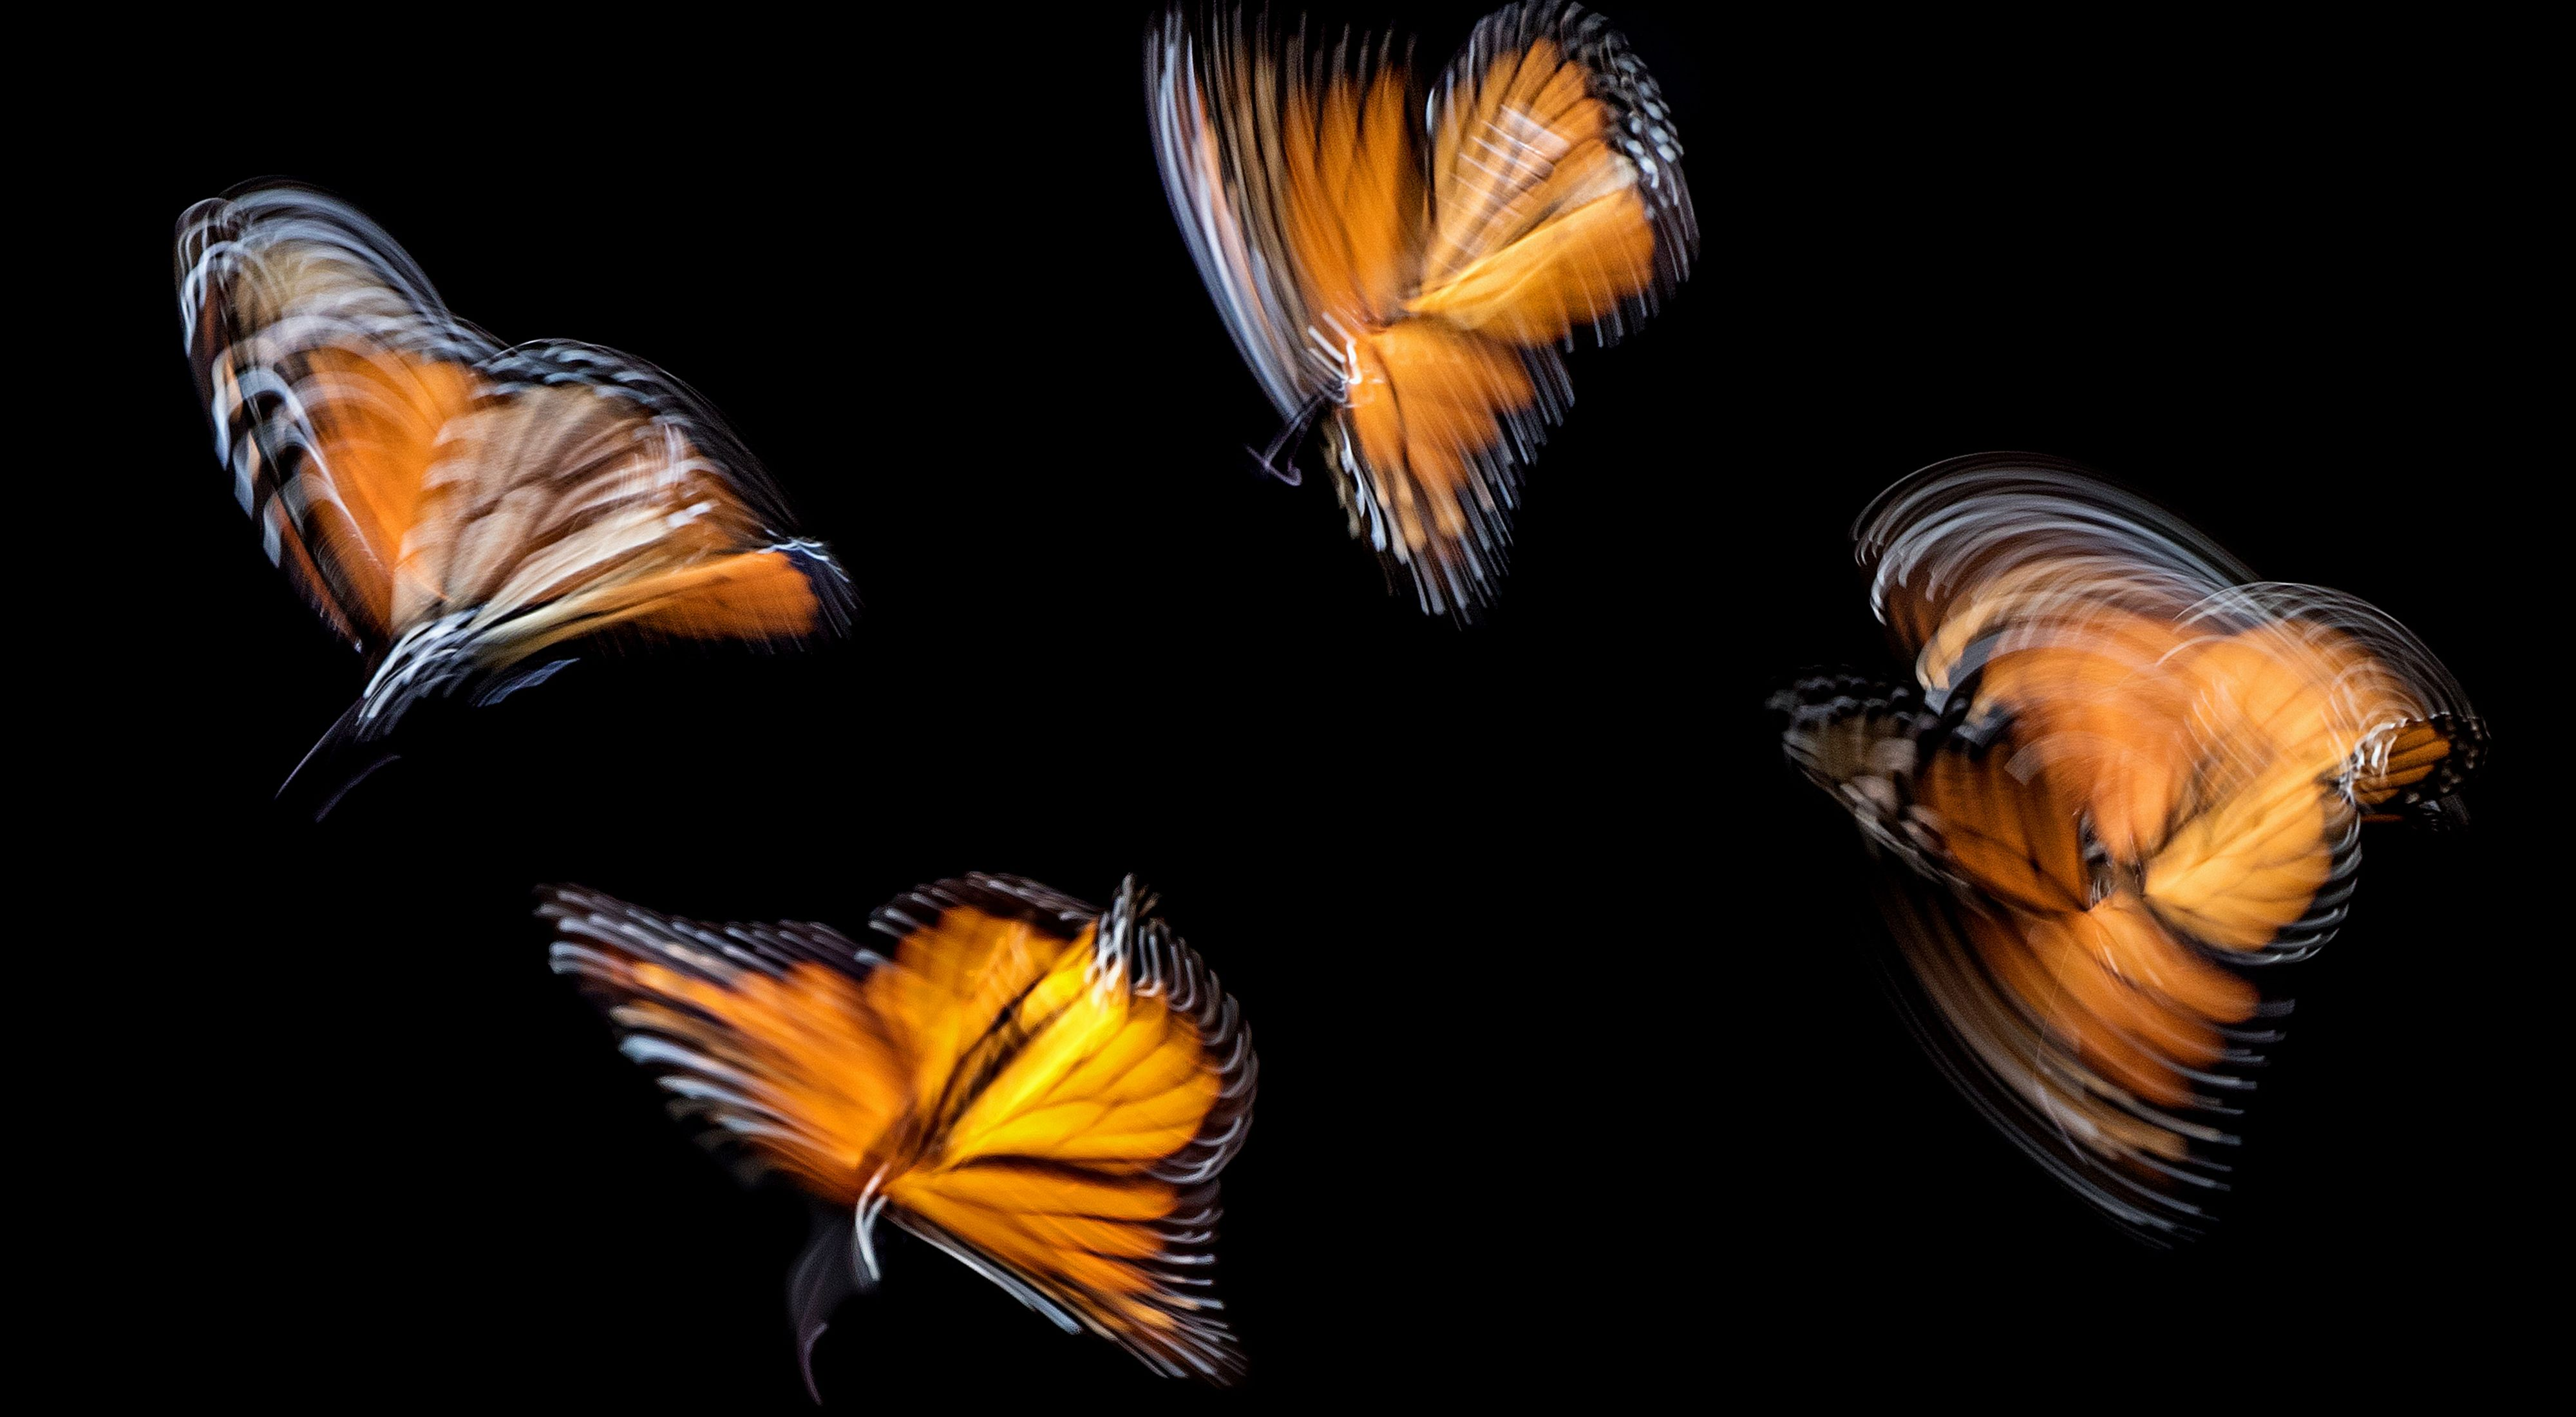 Monarchs in motion captured in Pismo Beach, California, USA